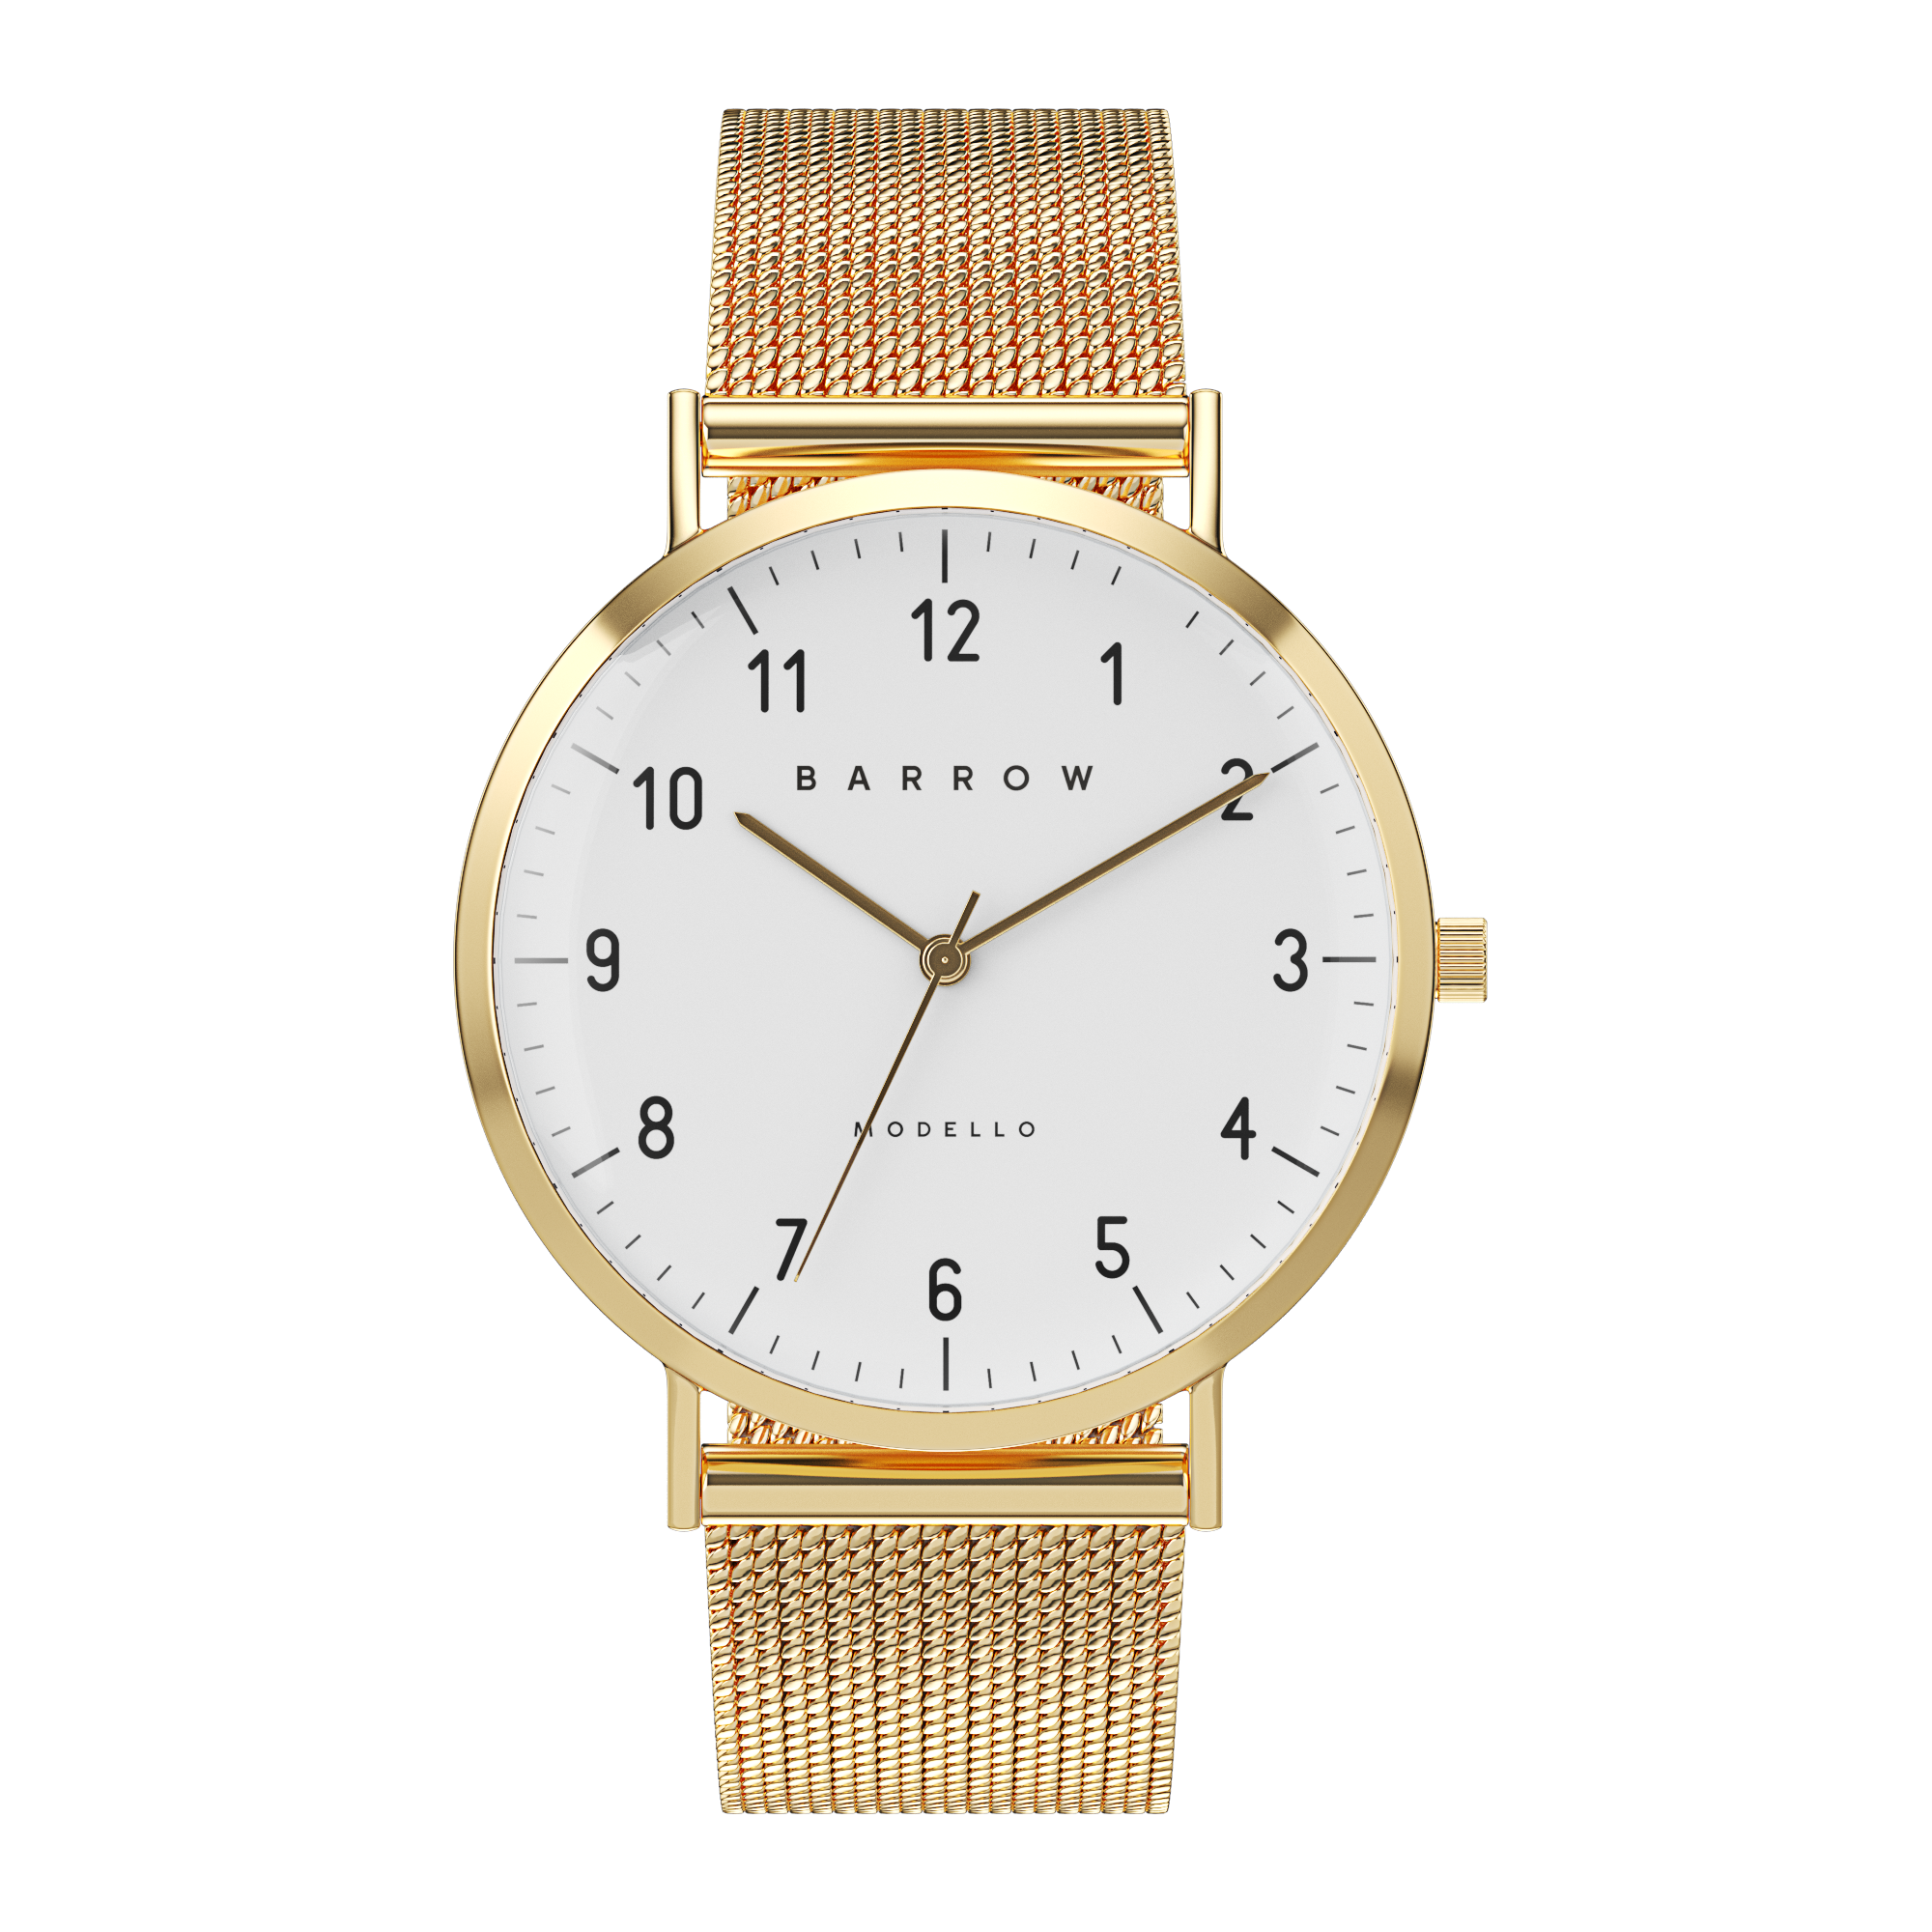 Barrow Petite Gold Swiss movement wrist watch